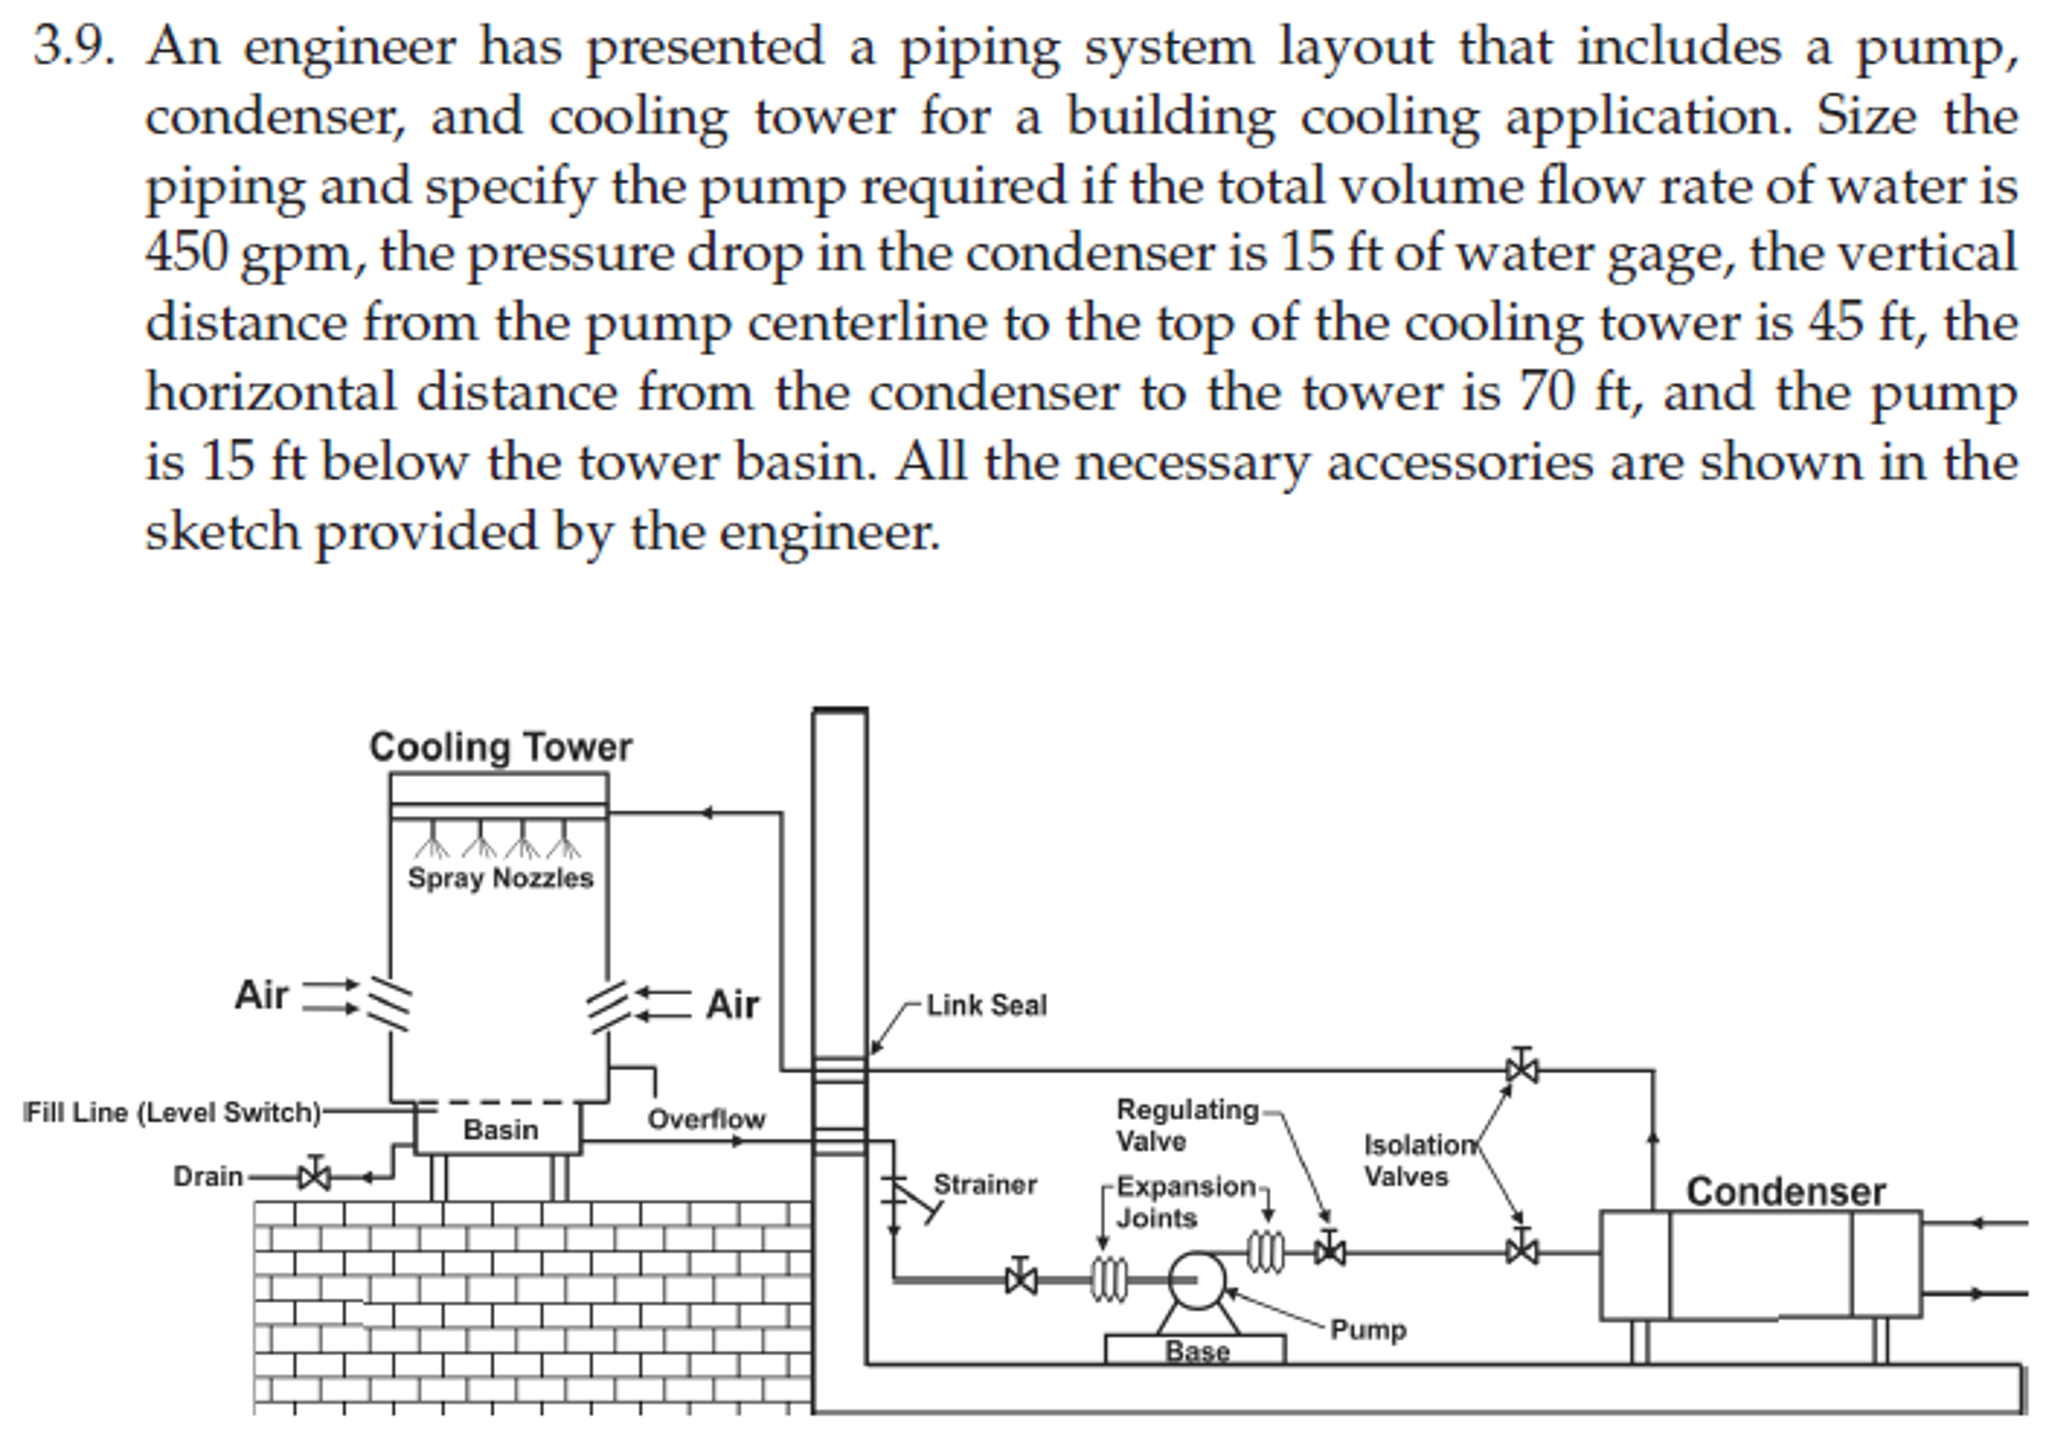 Piping Layout Drawing Wiring Library Freezer Diagram Model Ts In Addition True Gdm 26 An Engineer Has Presented A System T